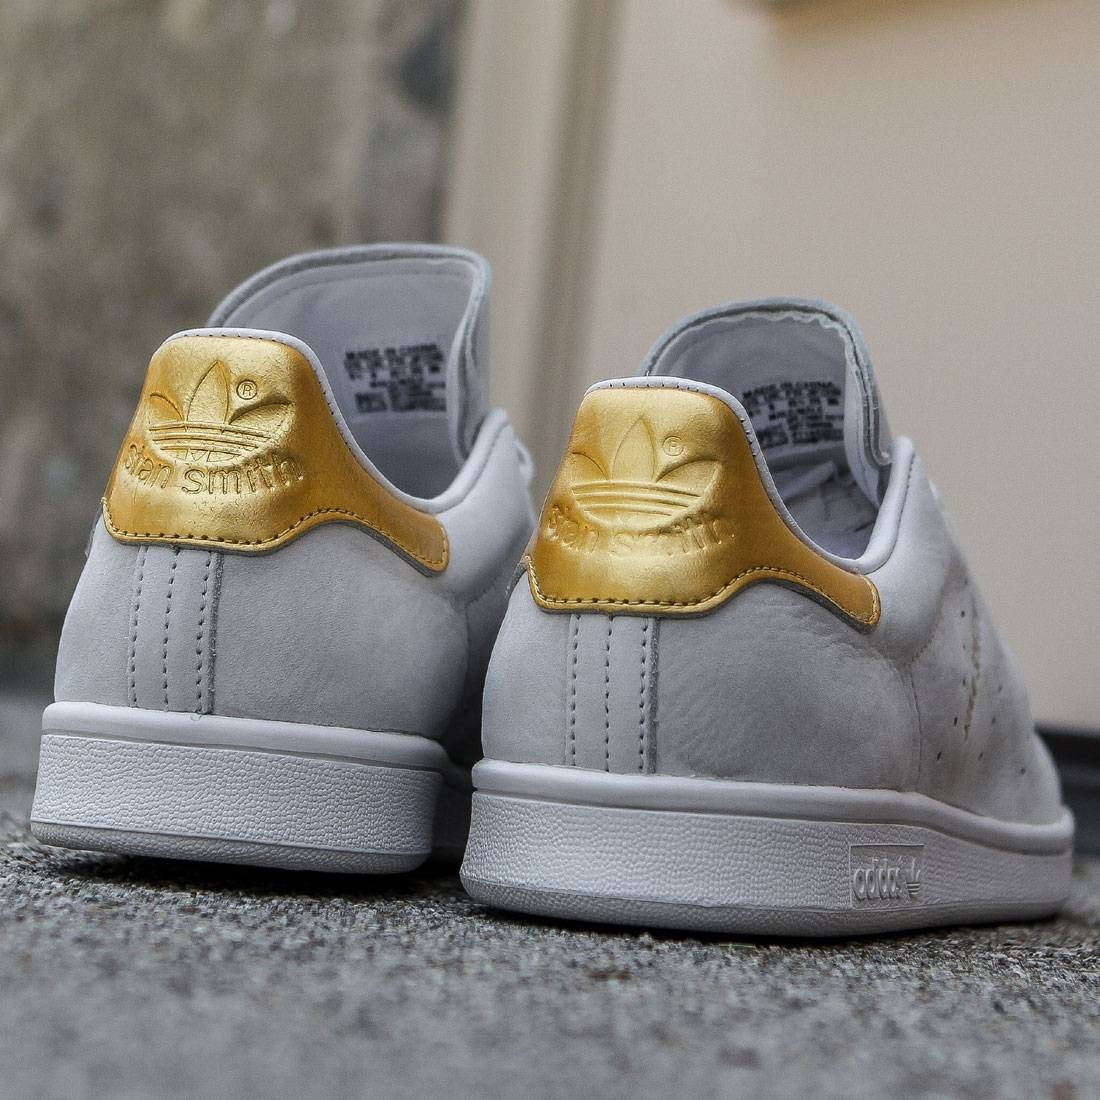 Stan Smith 999 Gold